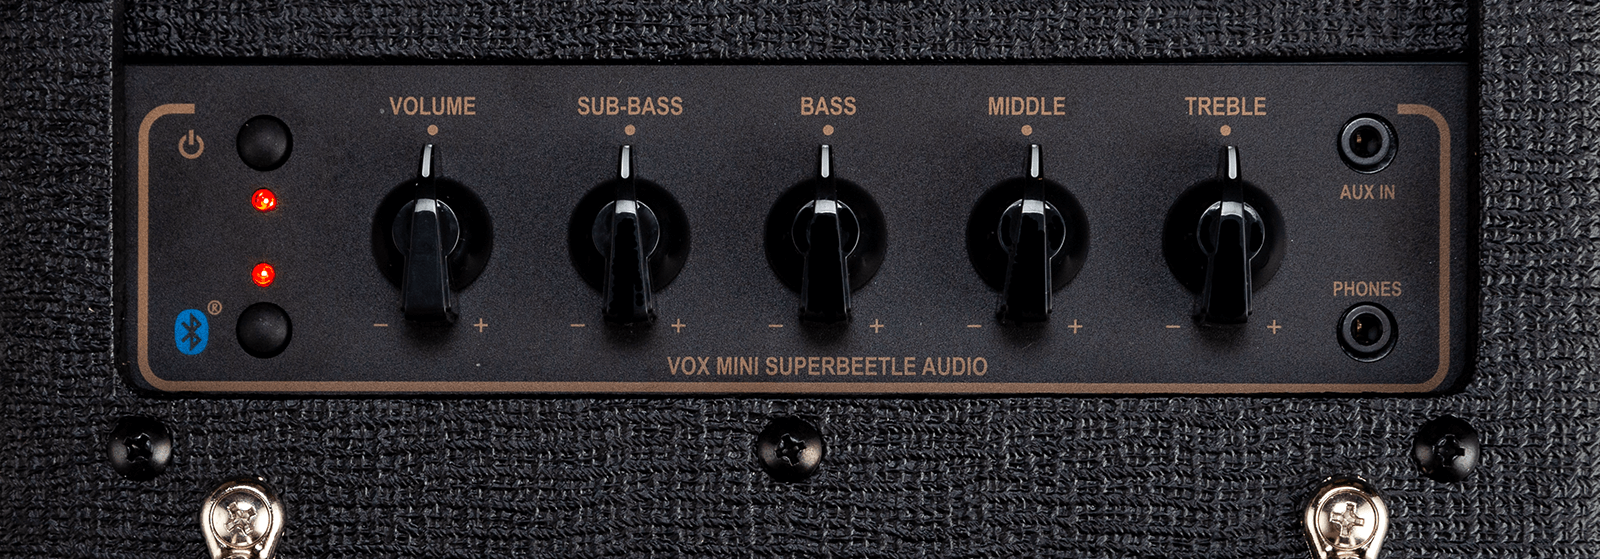 closeup of controls on black VOX MSB amp